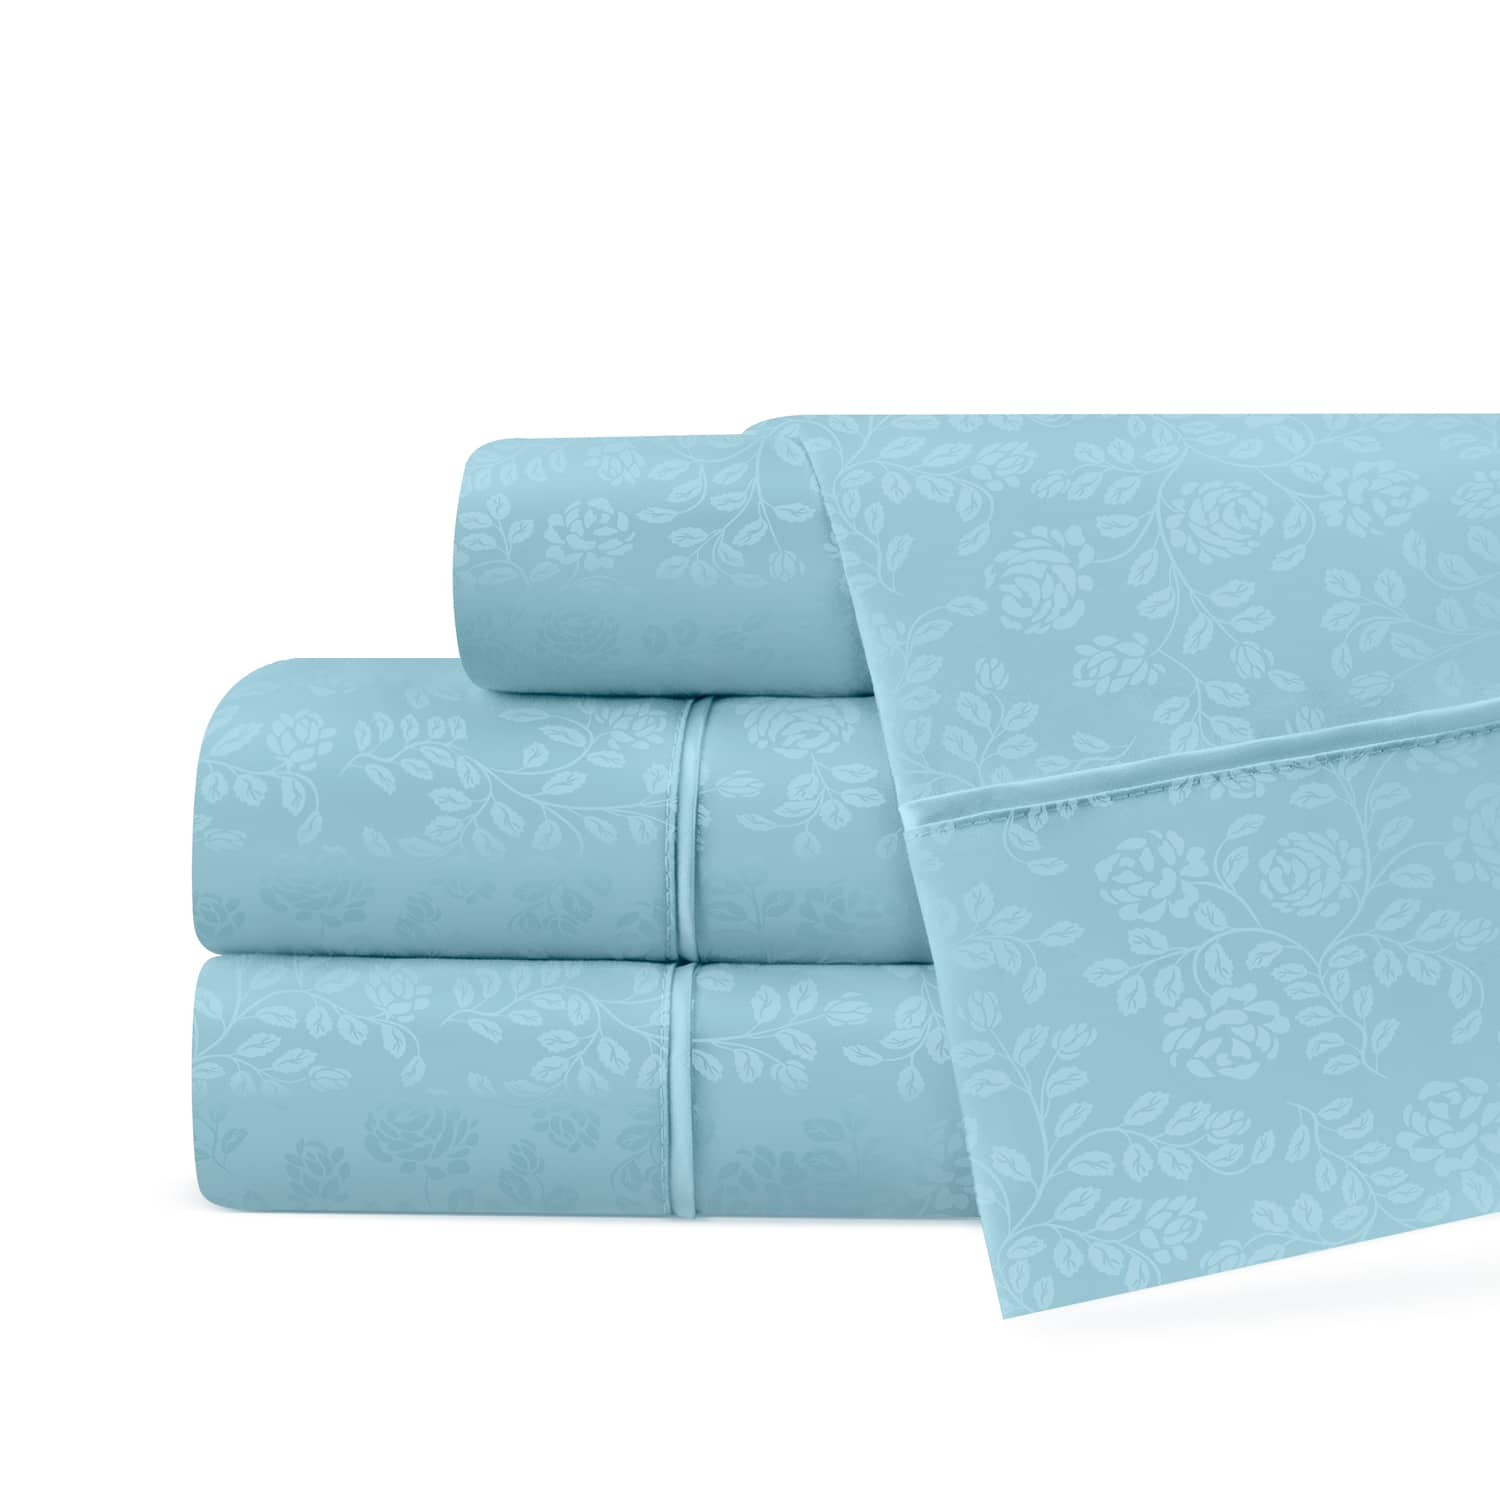 Linens and Hutch Floral Embossed Sheets: Starting at $19.17